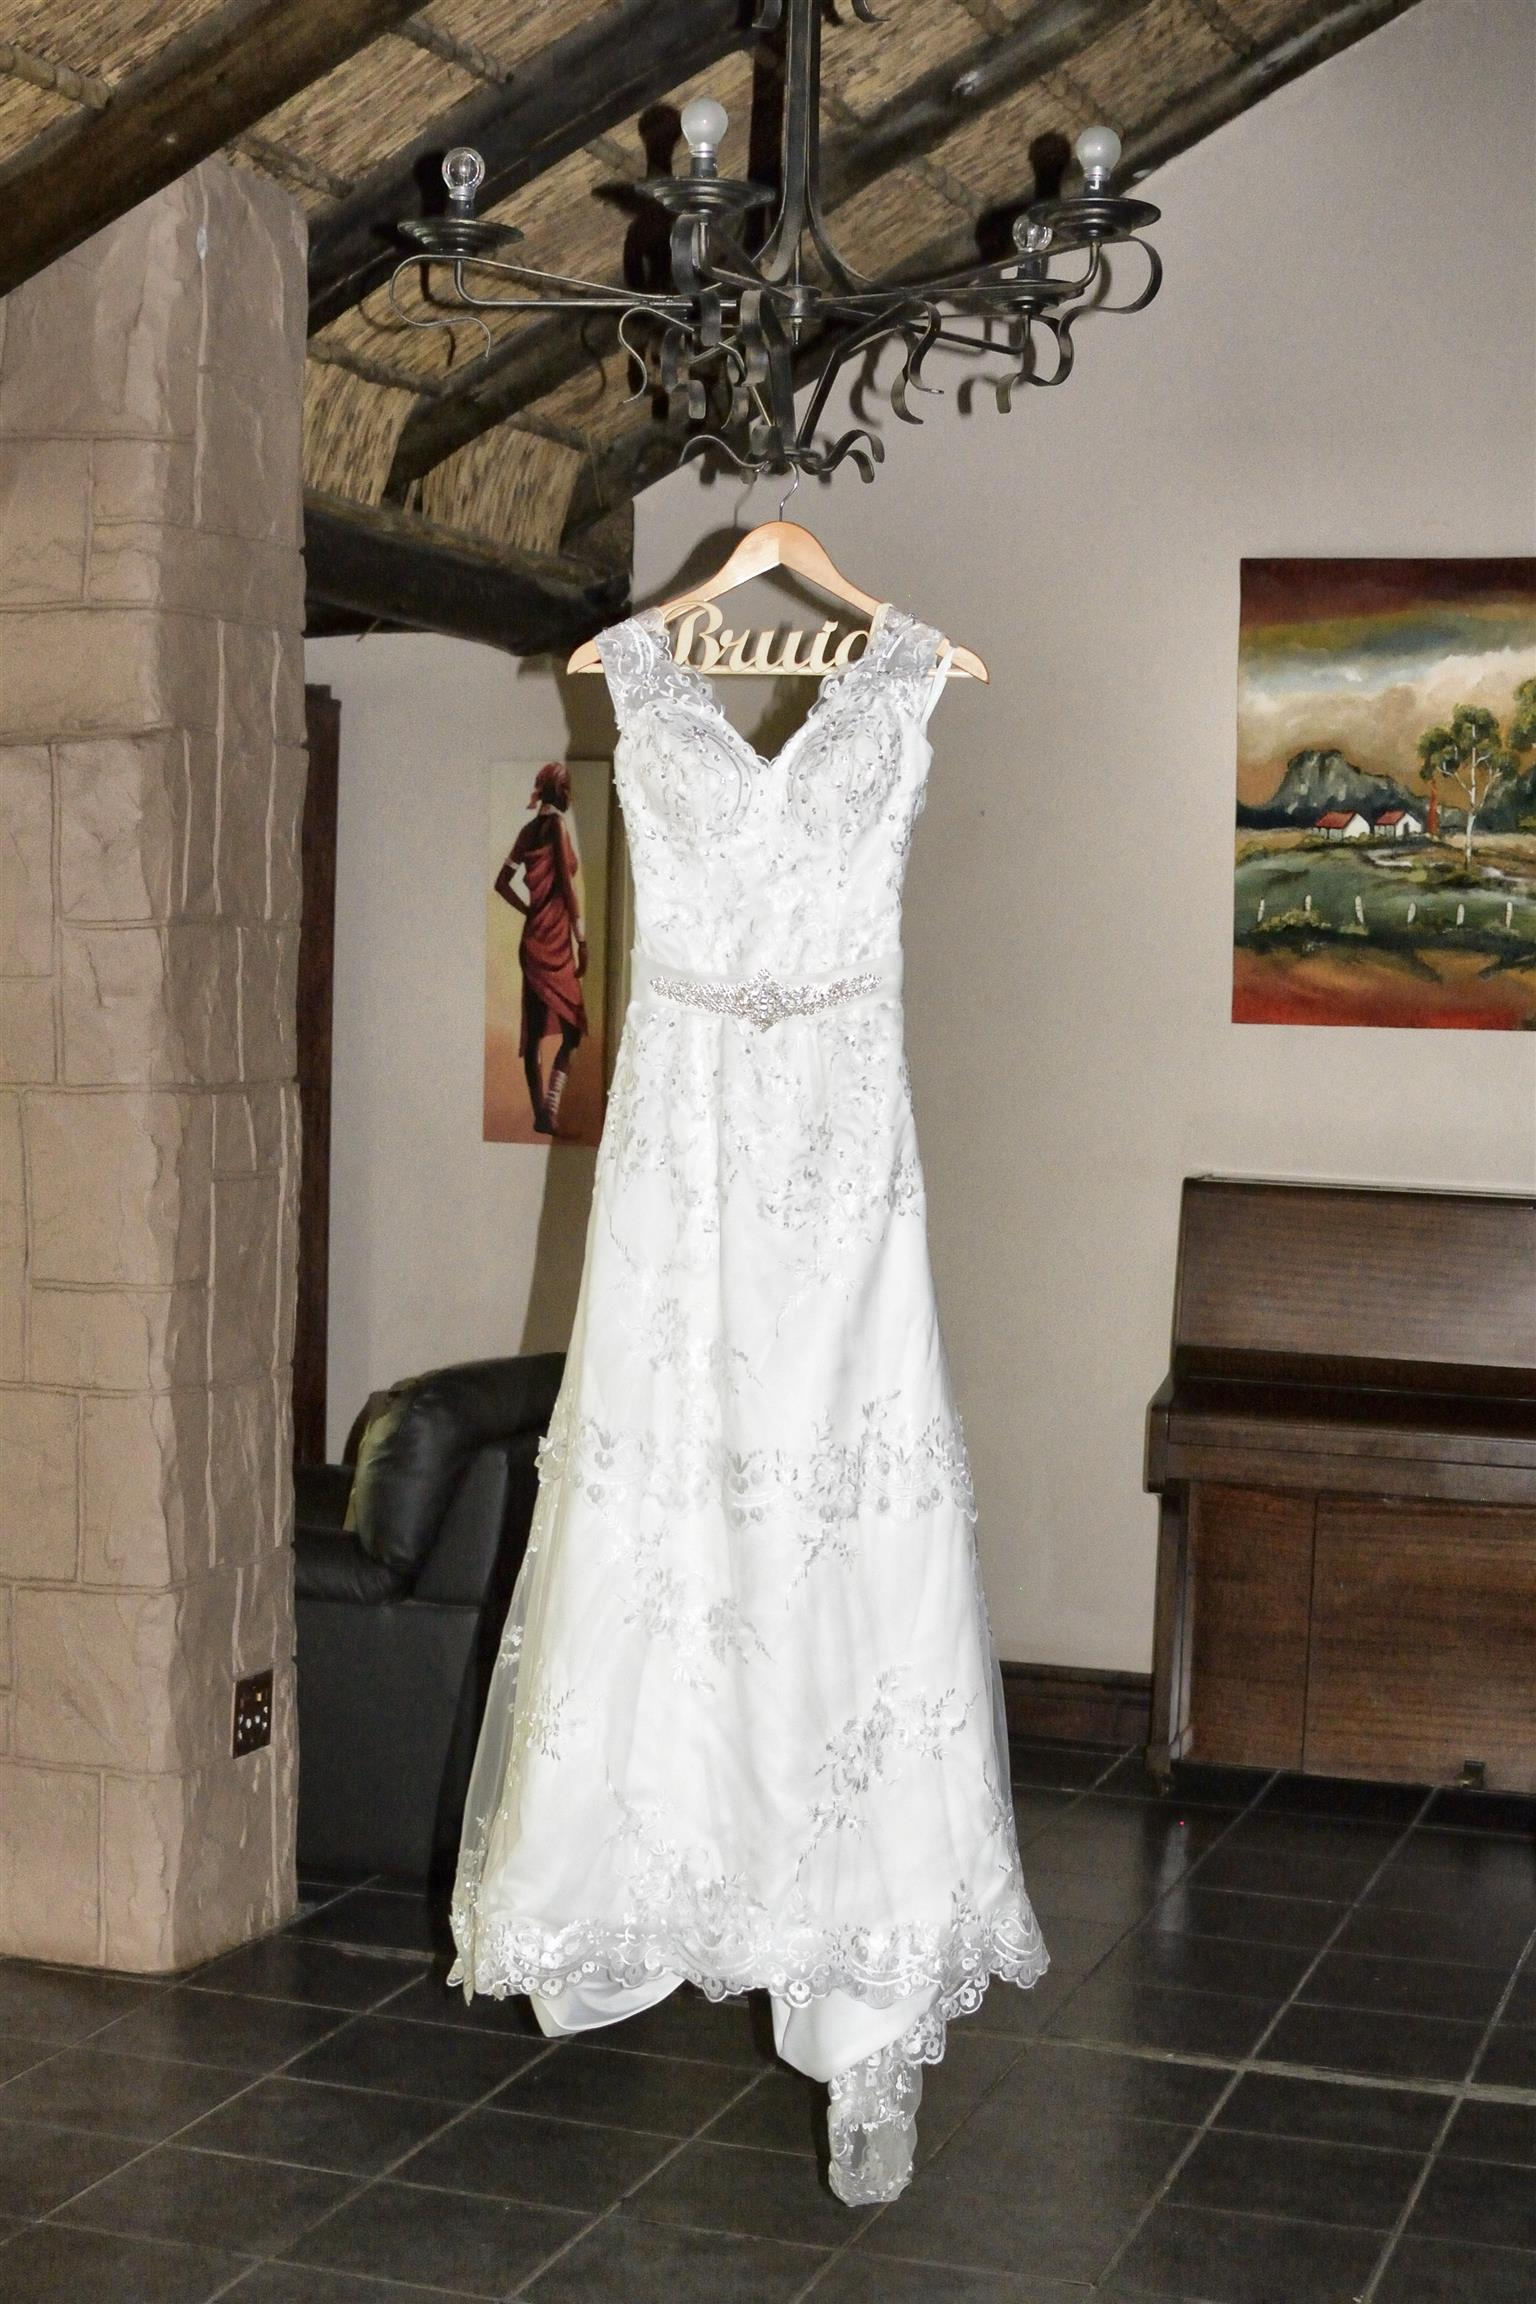 LACE WEDDING DRESS TO HIRE